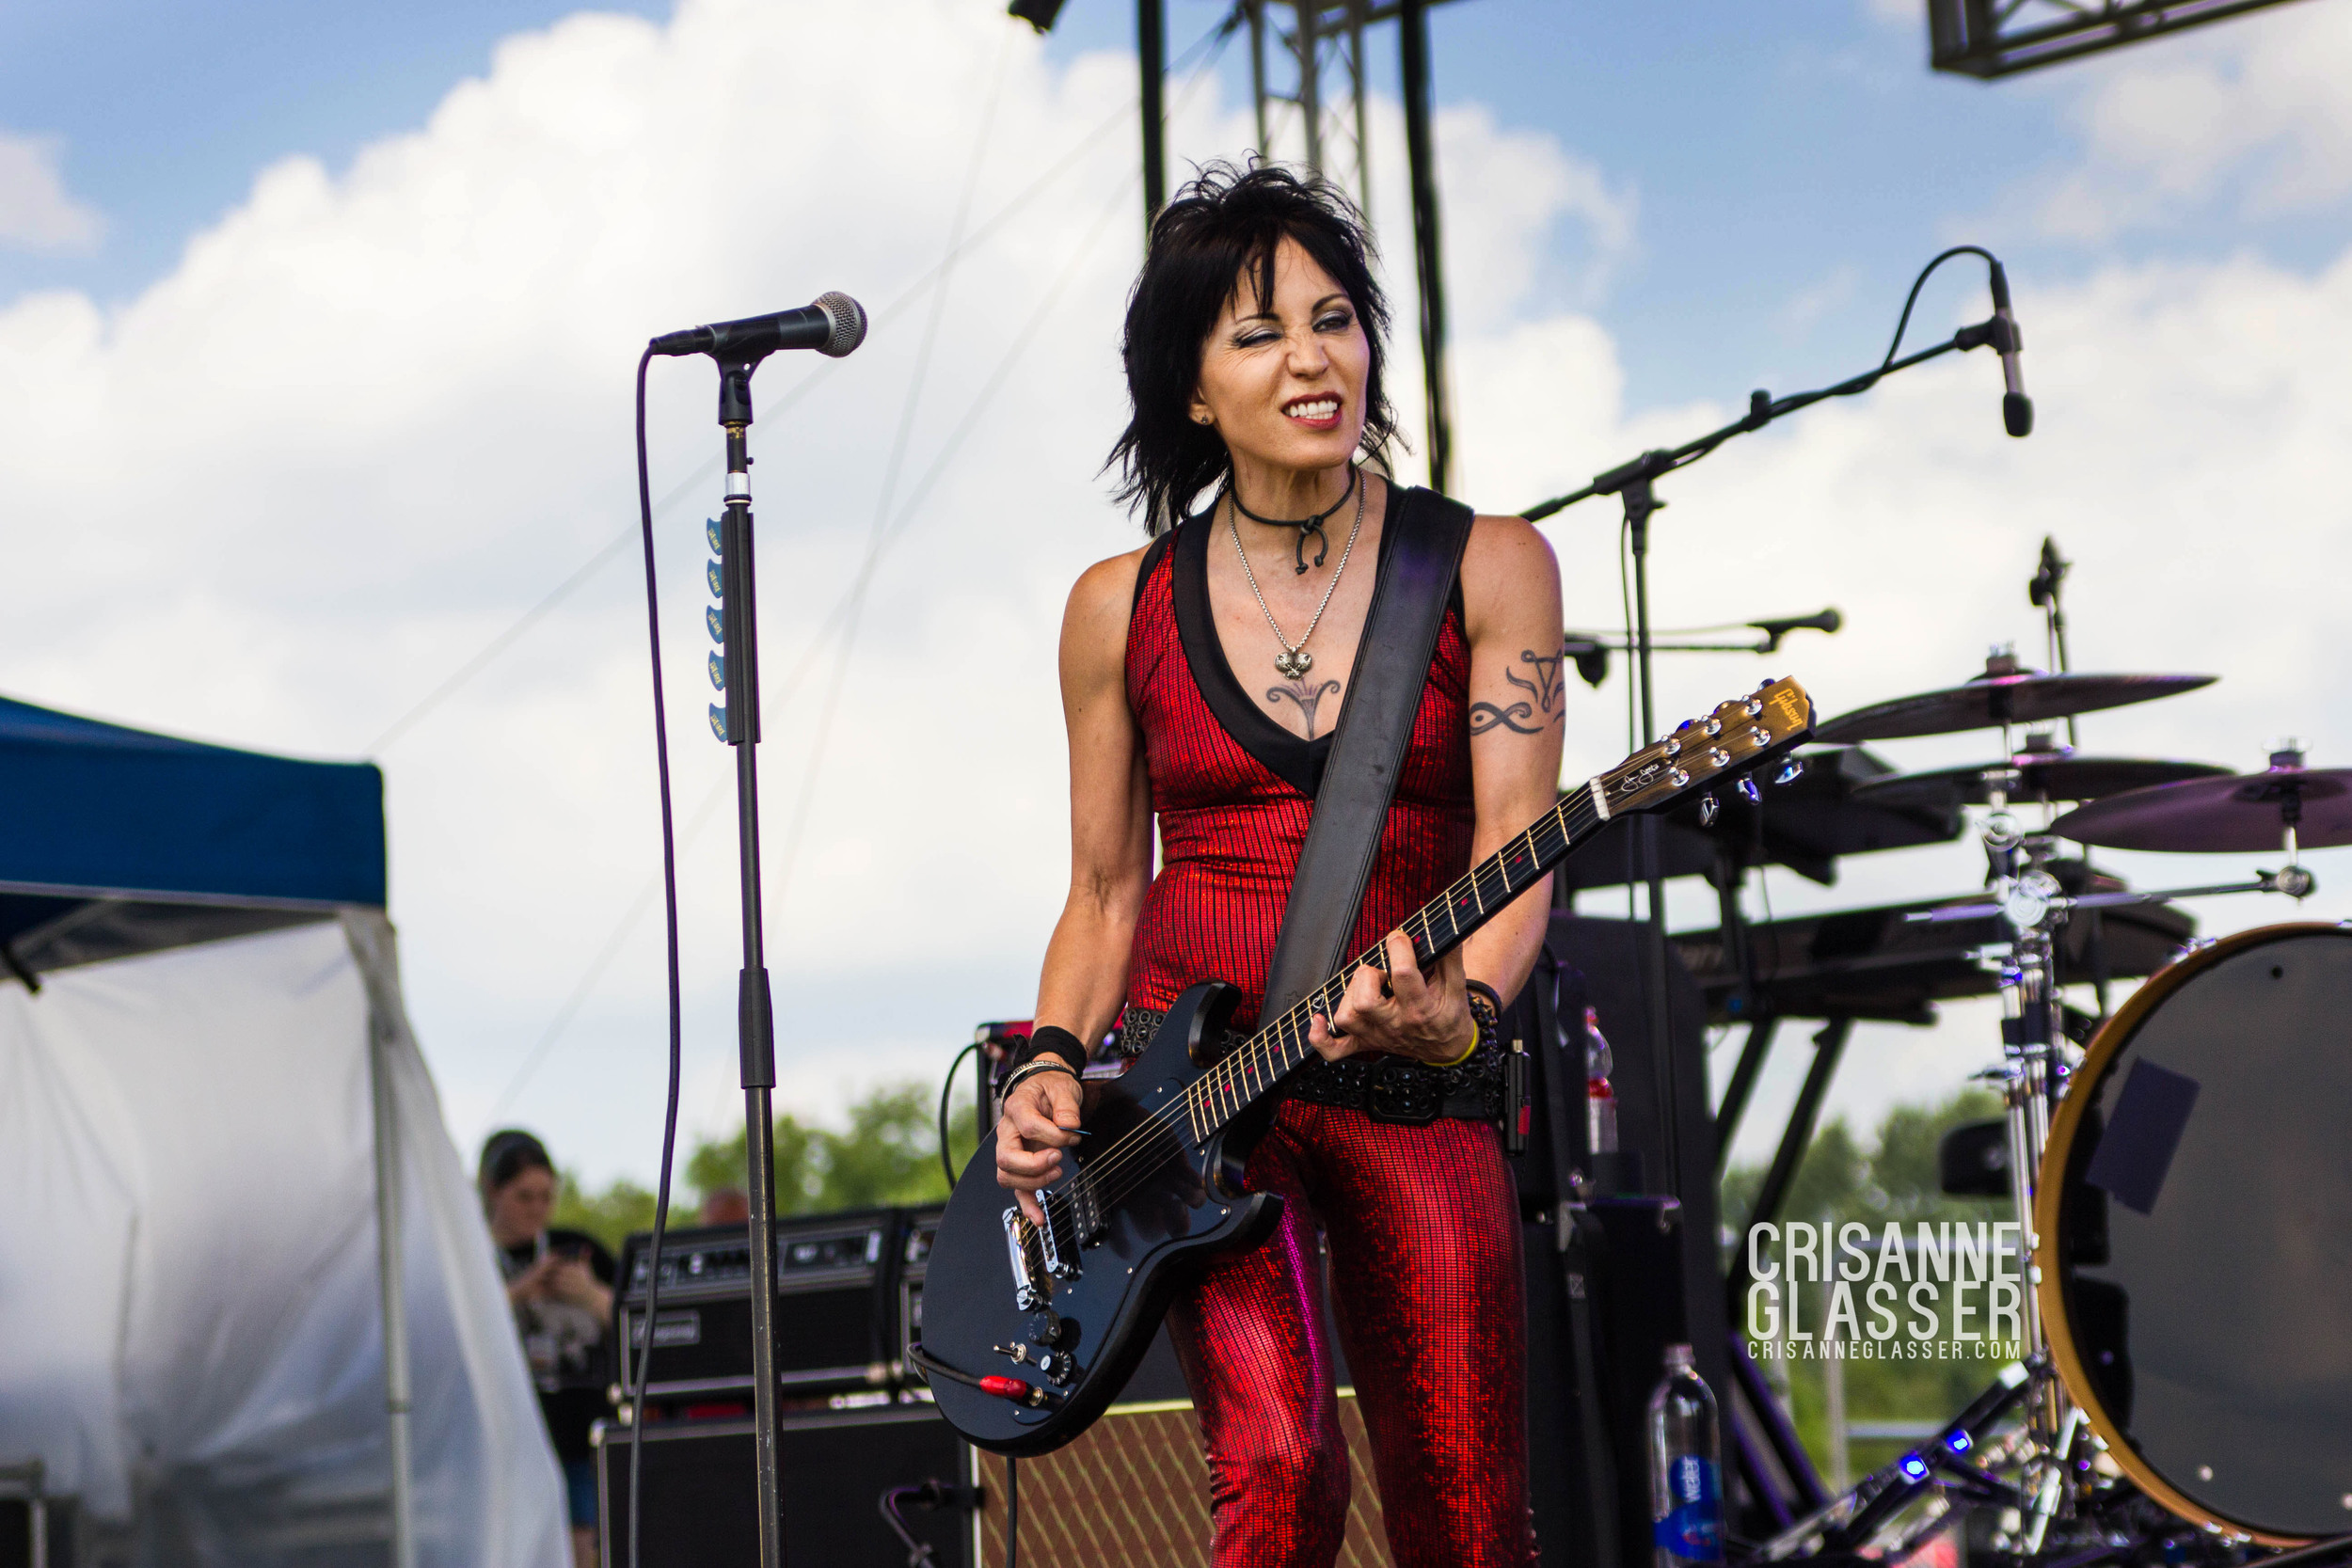 Joan Jett // Joan Jett & the Blackhearts // © CRISANNE GLASSER 2014